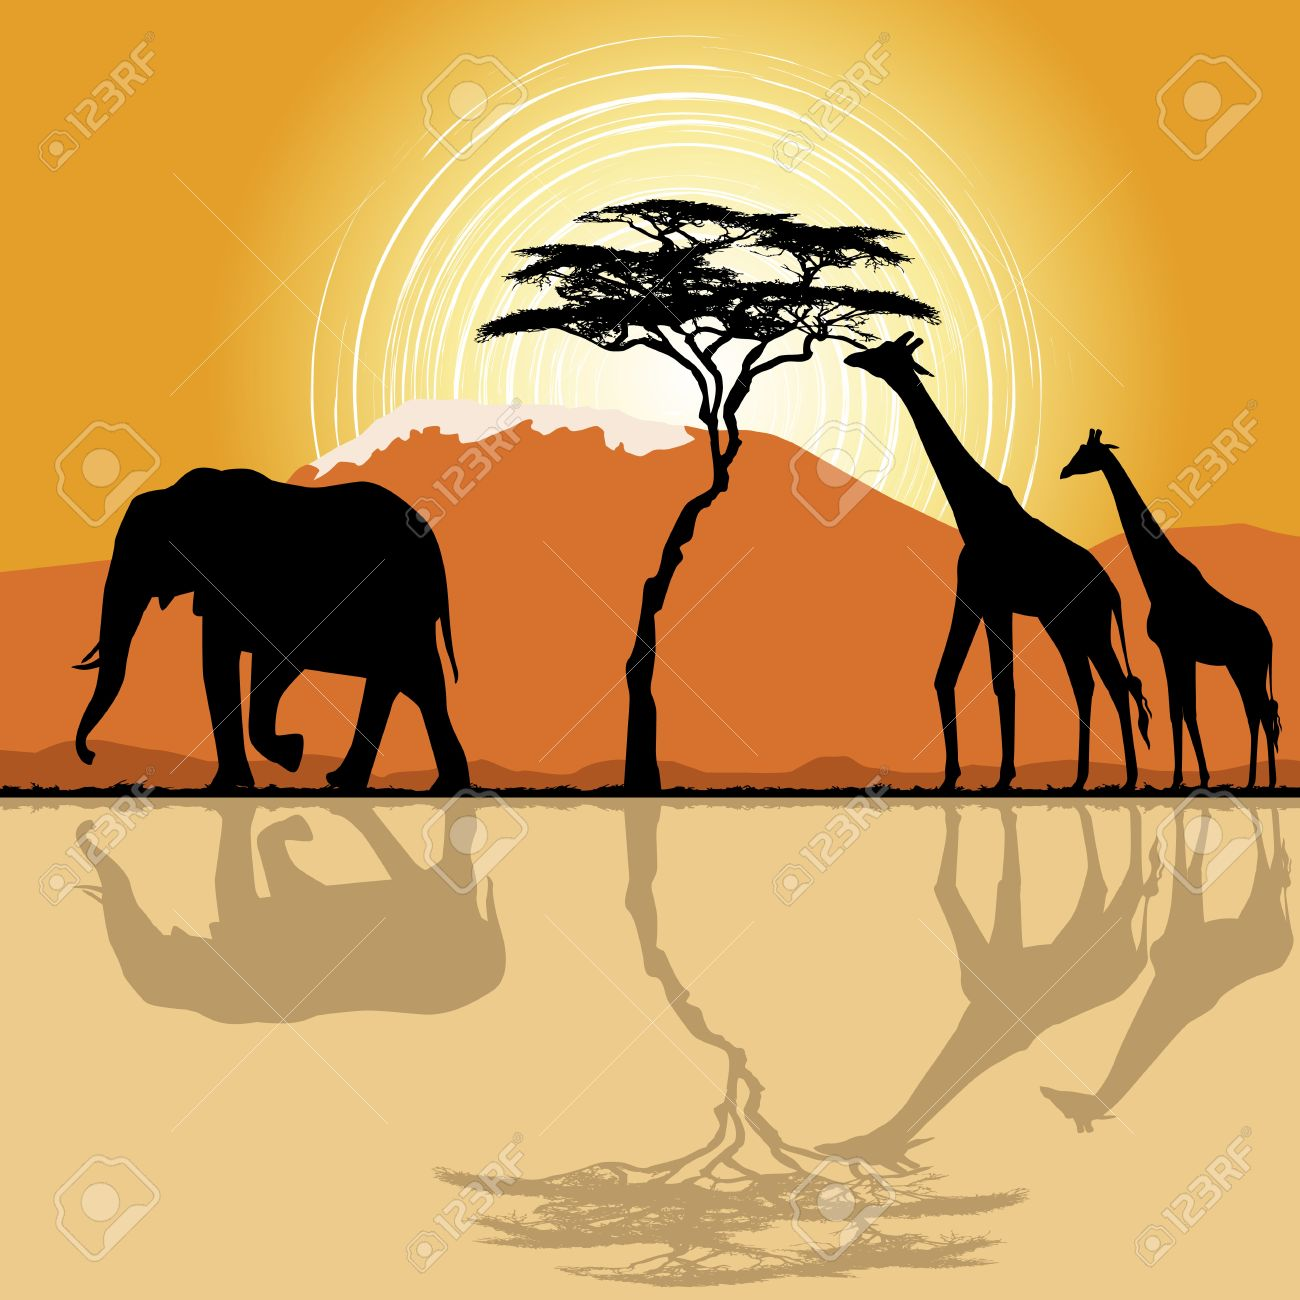 Savannah clipart african savanna #2